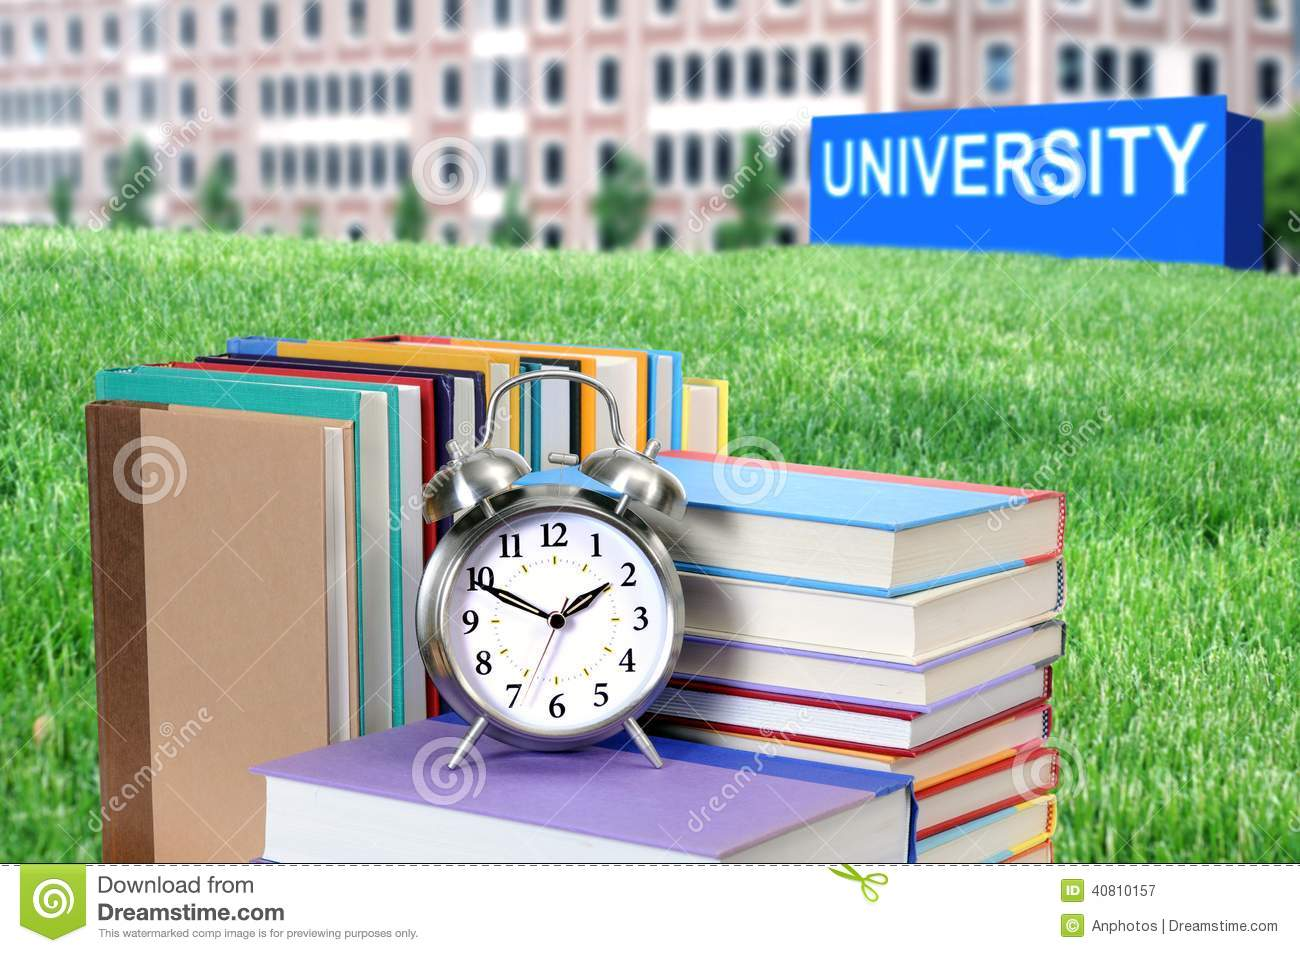 Concept of higher education